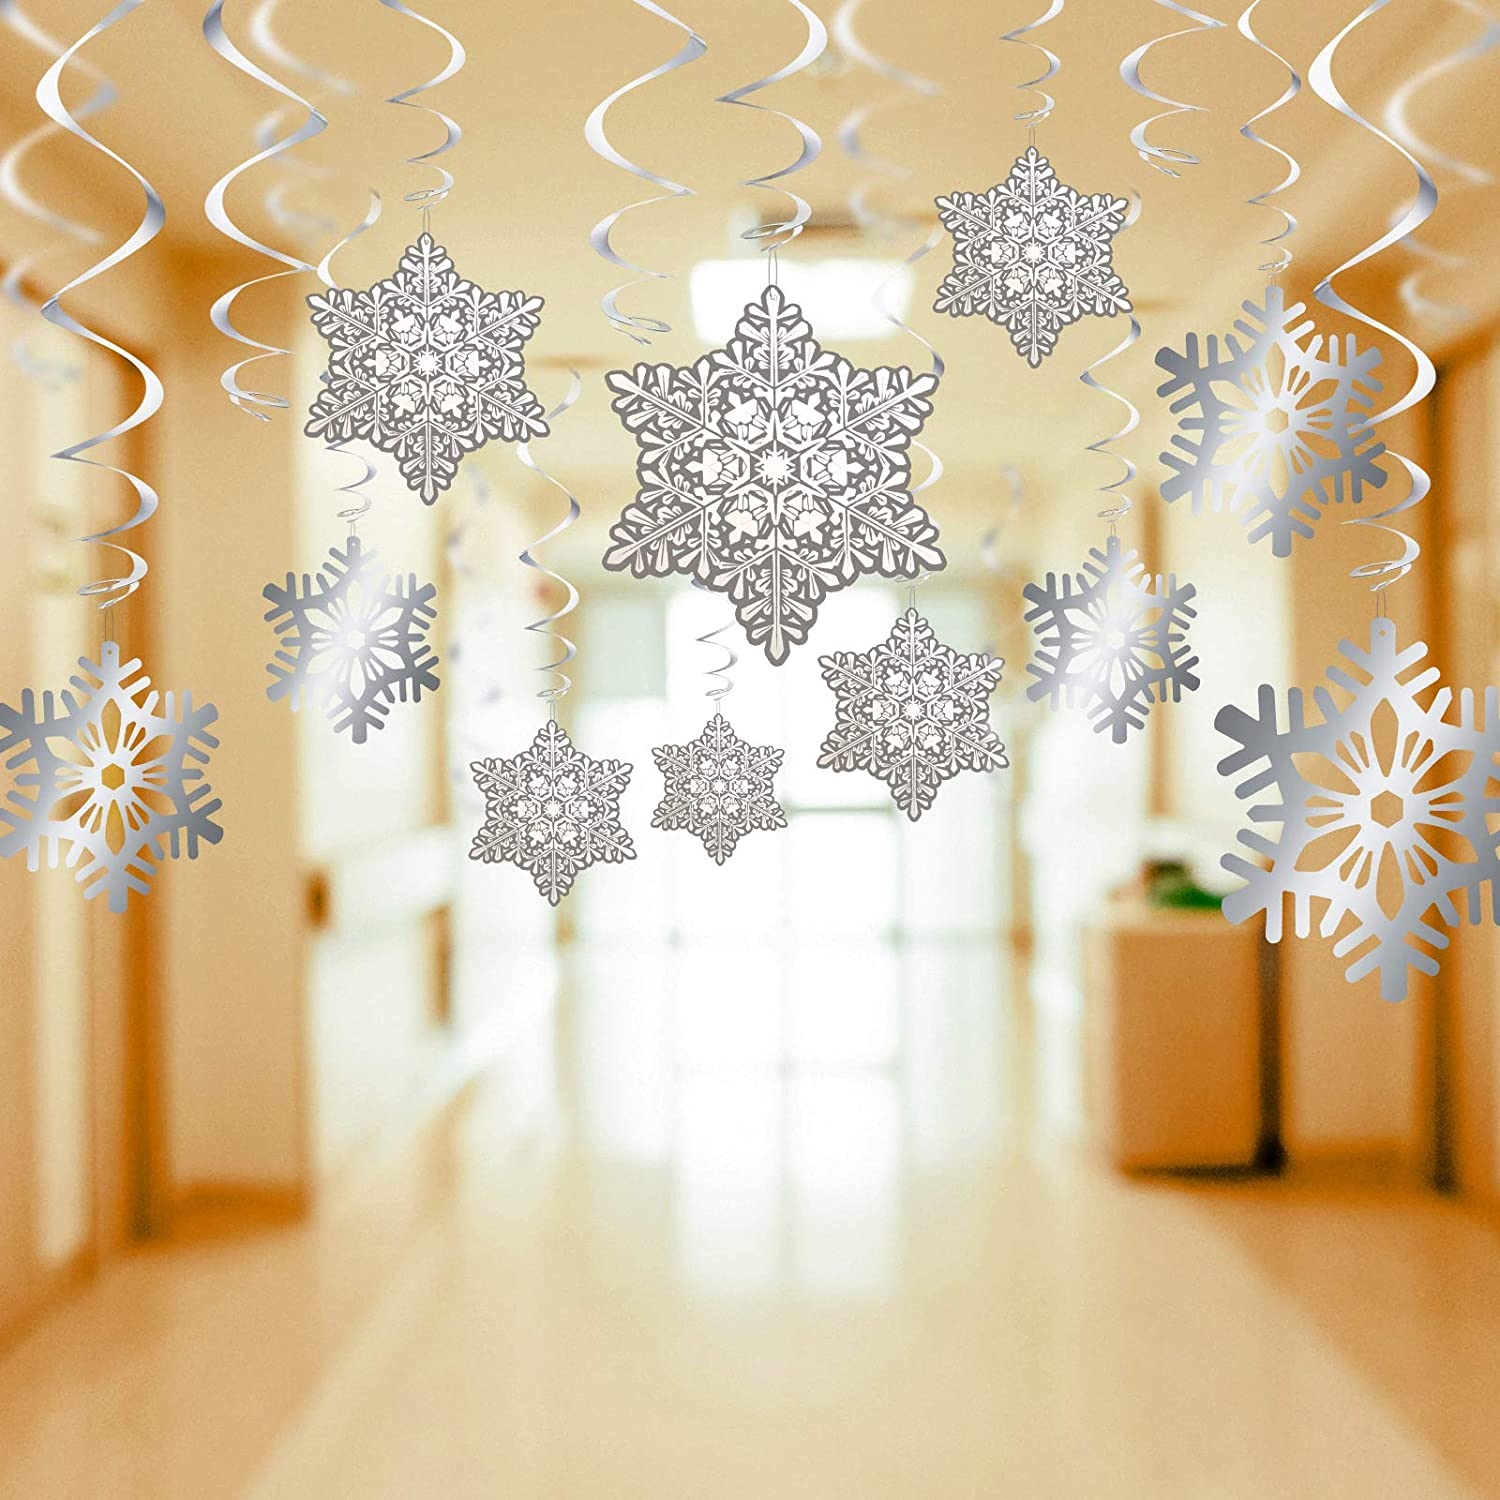 Boao 60 Pieces Christmas Snowflake Hanging Swirl Decorations Spiral Streamers for Christmas Party Supplies, Foil Ceiling Ornaments for Xmas Winter Holiday Party Decor